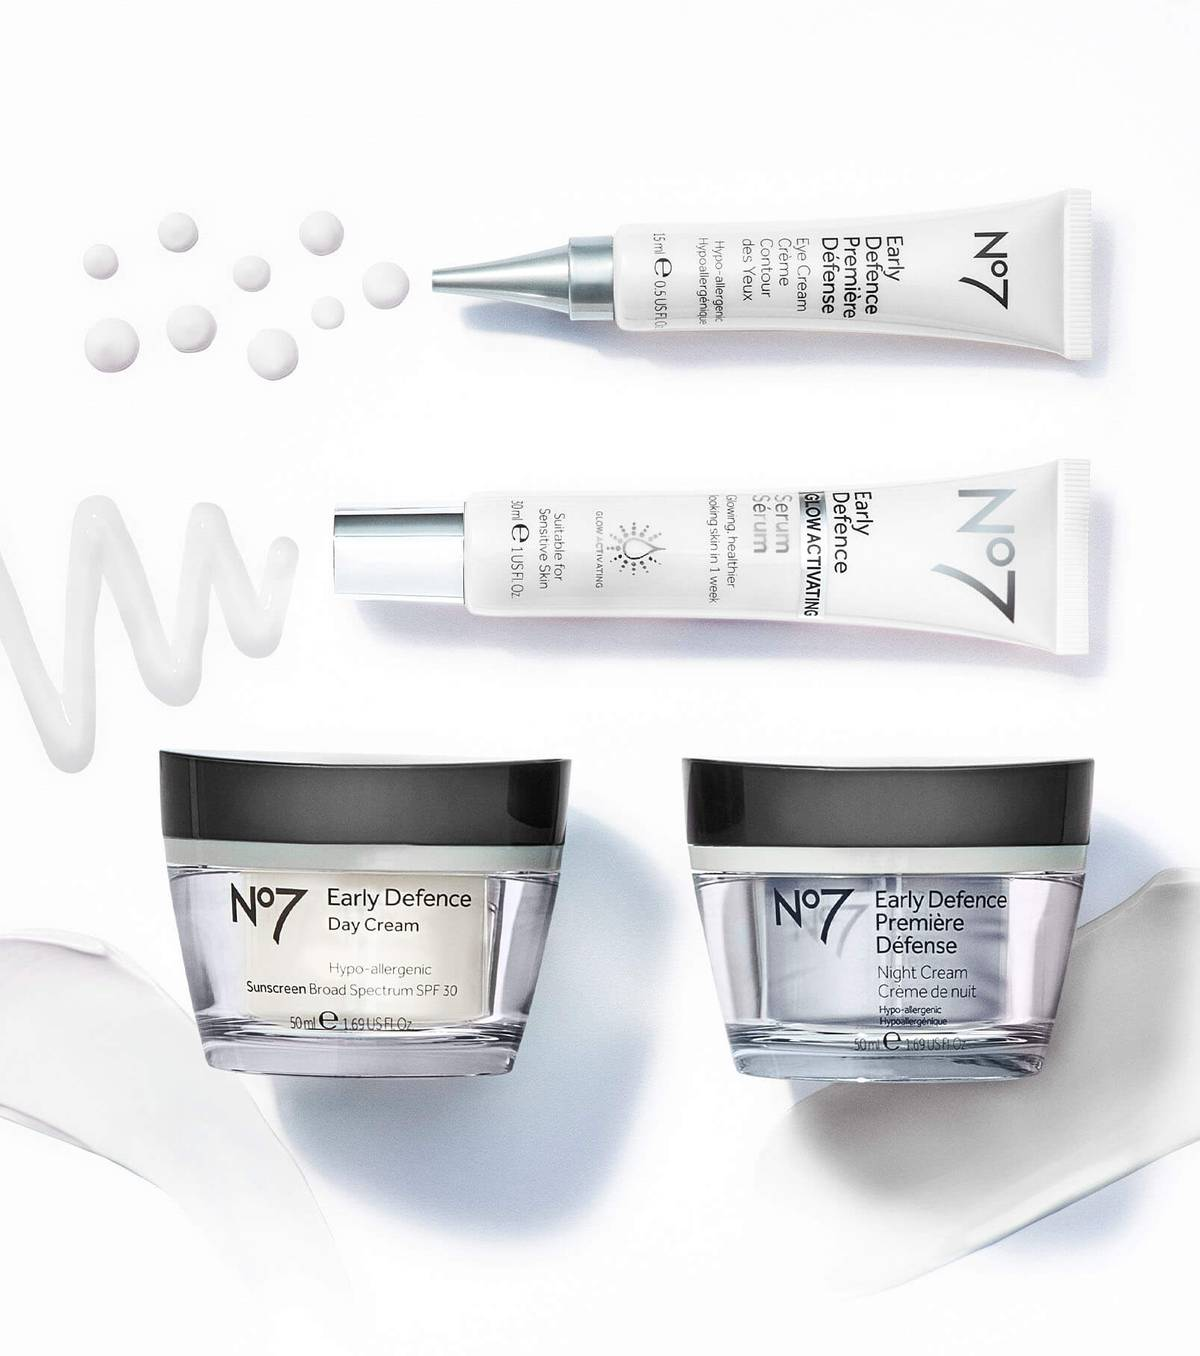 Skincare Solutions for Real Results. Buy any 3 skincare products, get 1 free. Shop now.